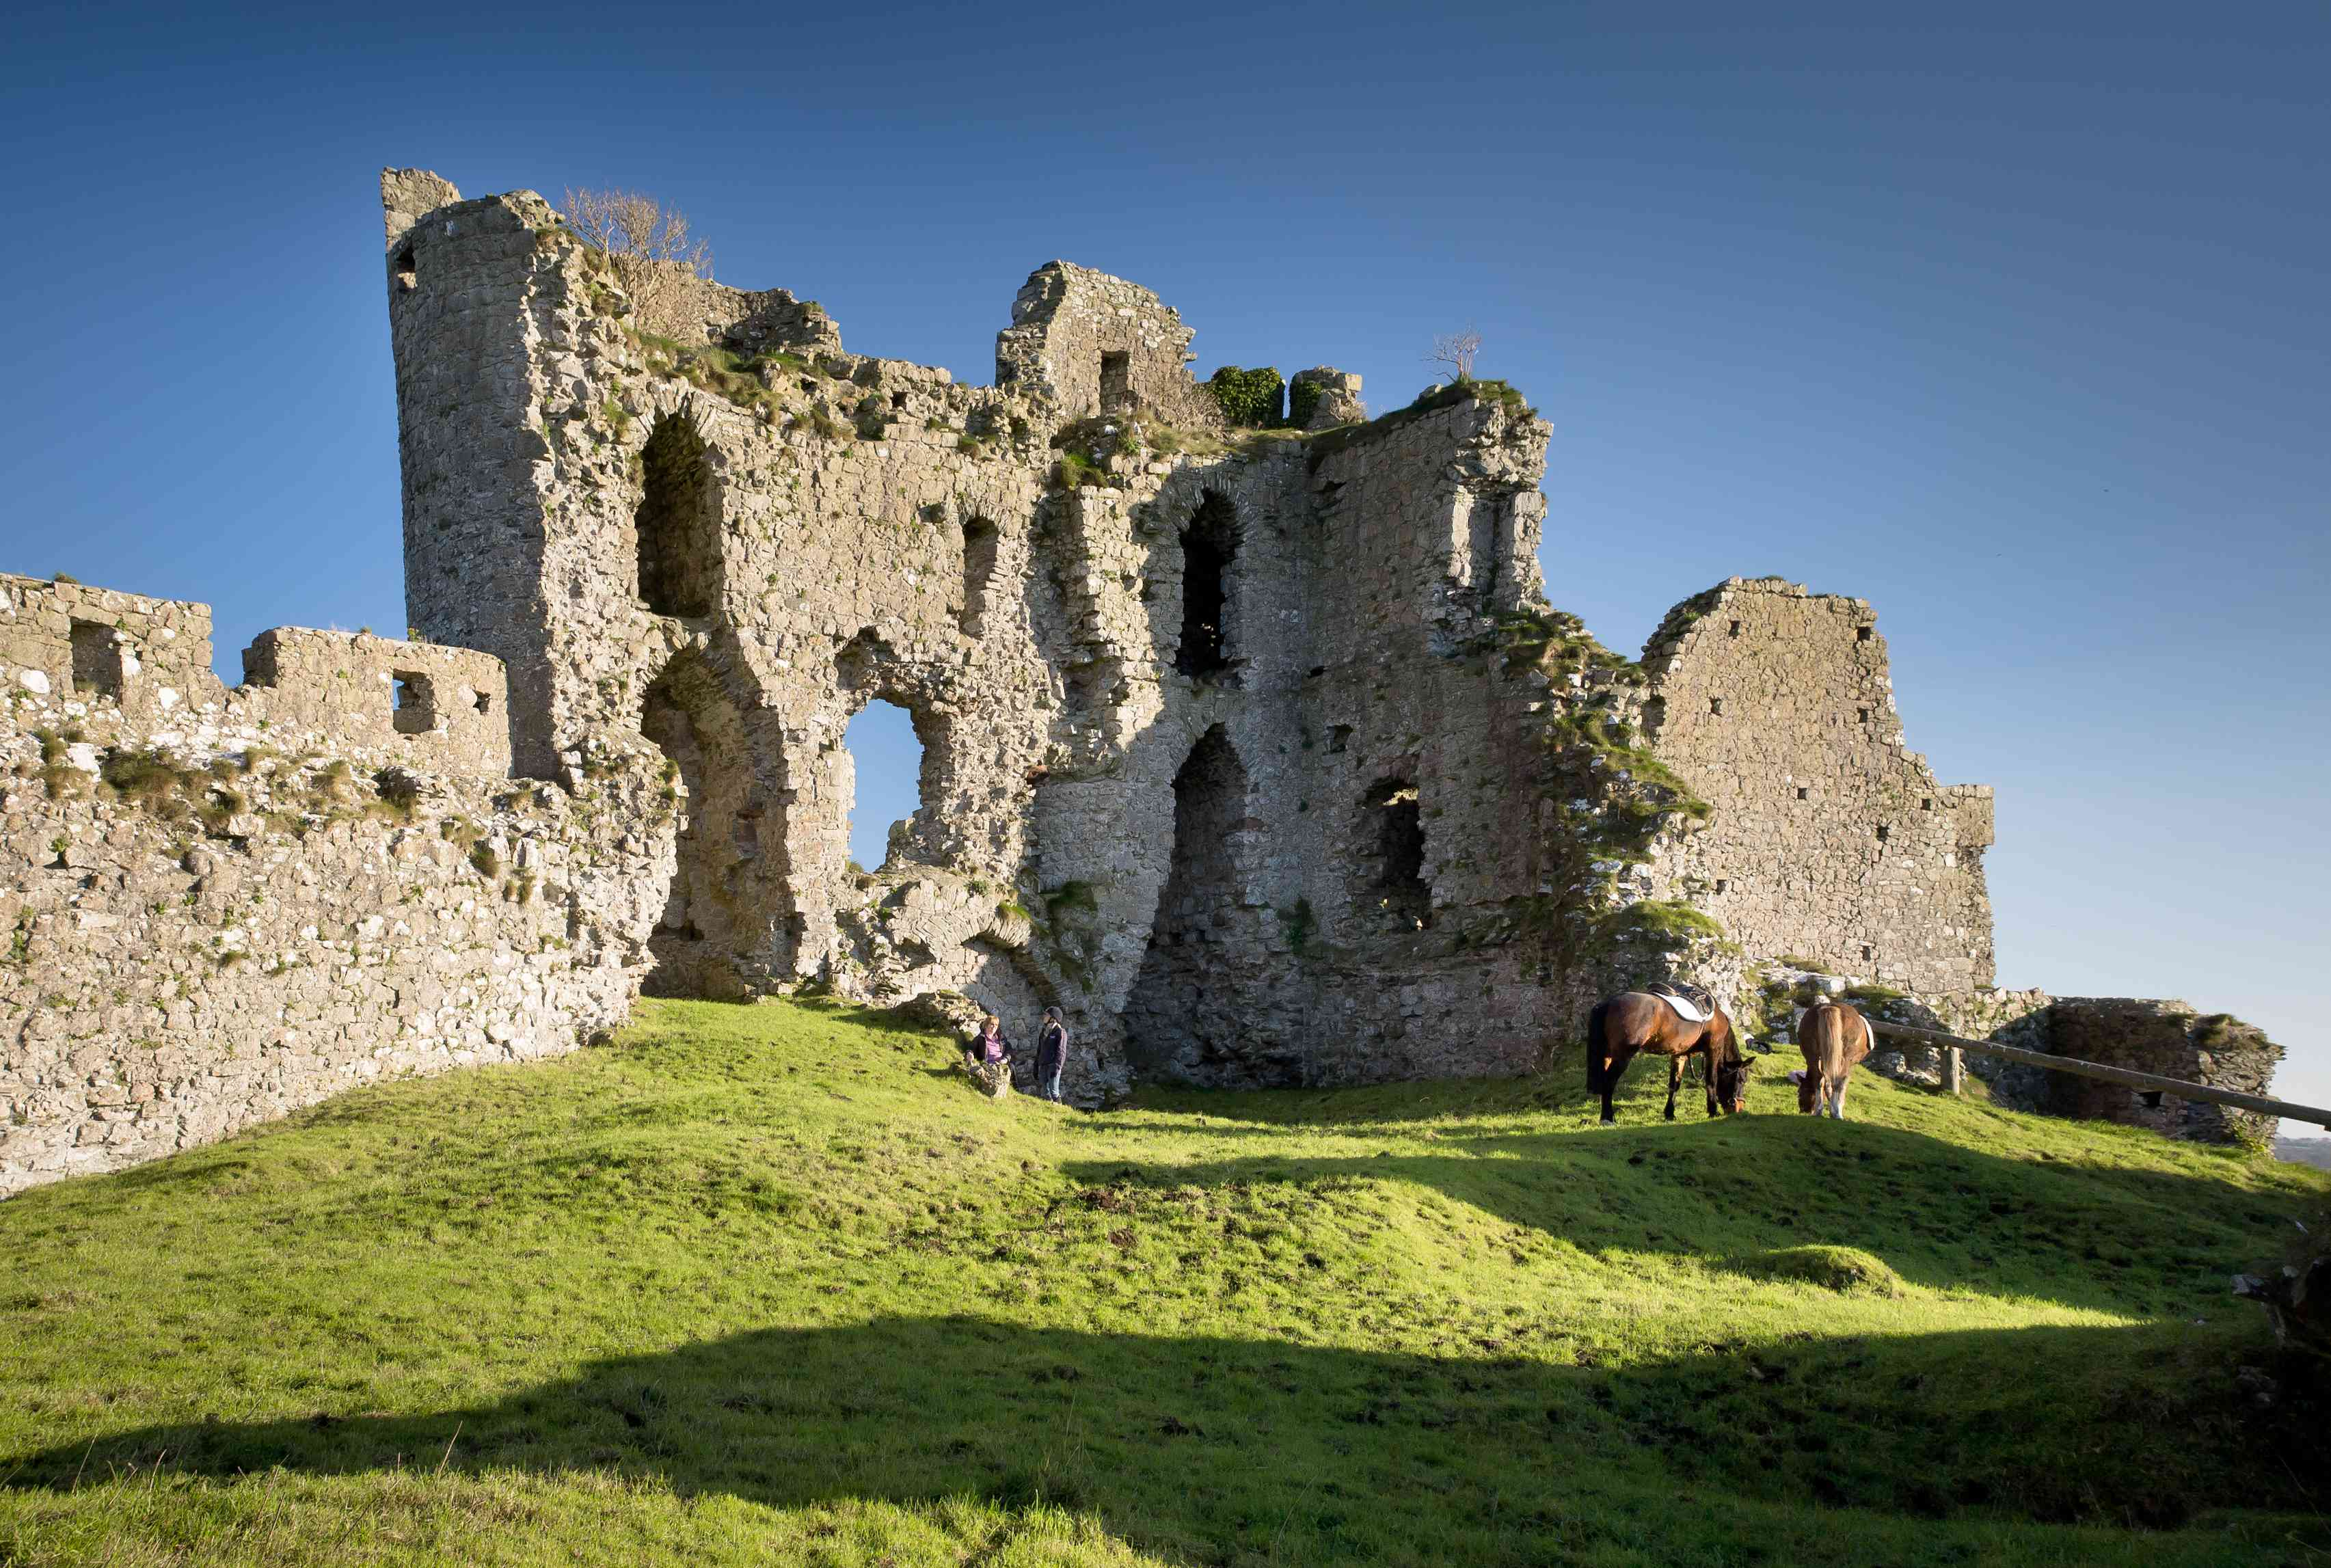 The ruins of Castle Roche in Dundalk with two horses grazing nearby and two people standing next to the ruins